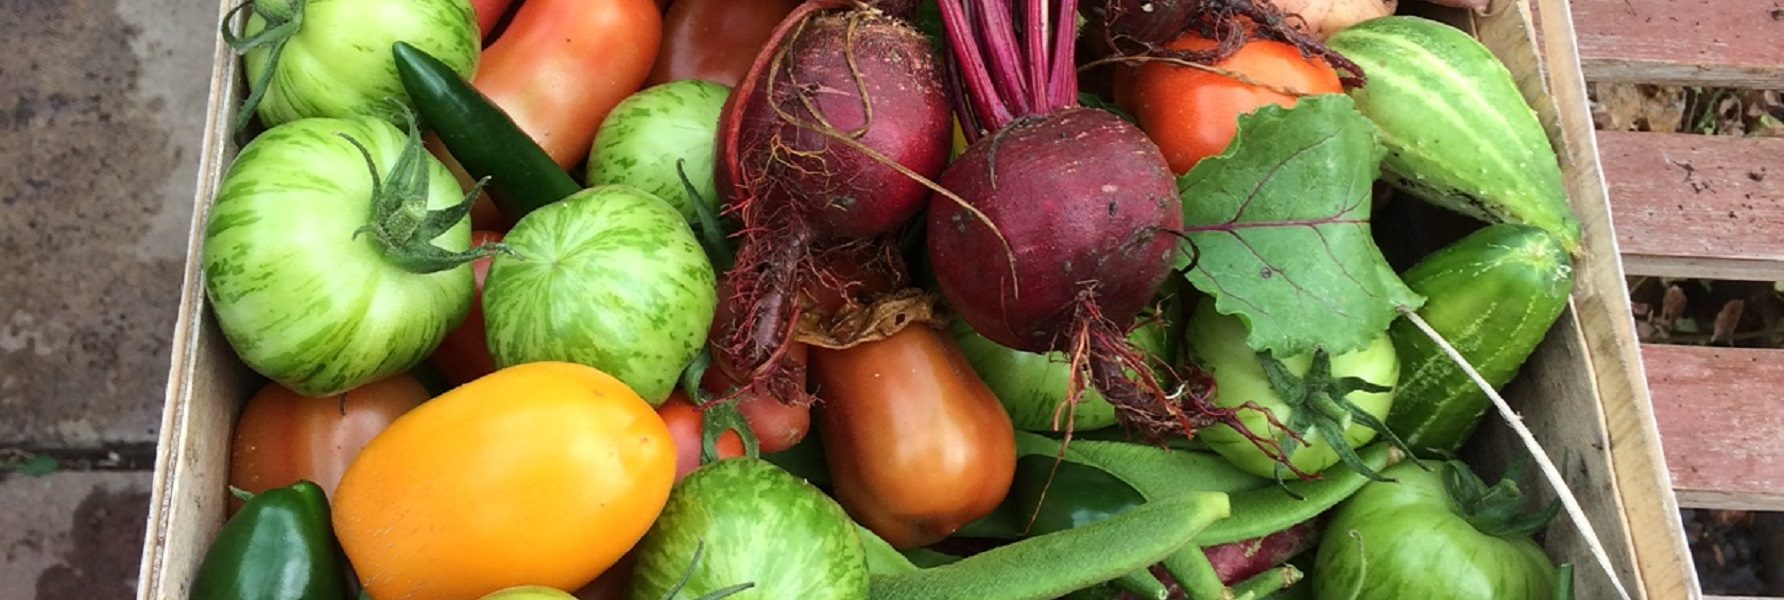 Wooden box full of colourful vegetables like peppers, runner beans and beetroot